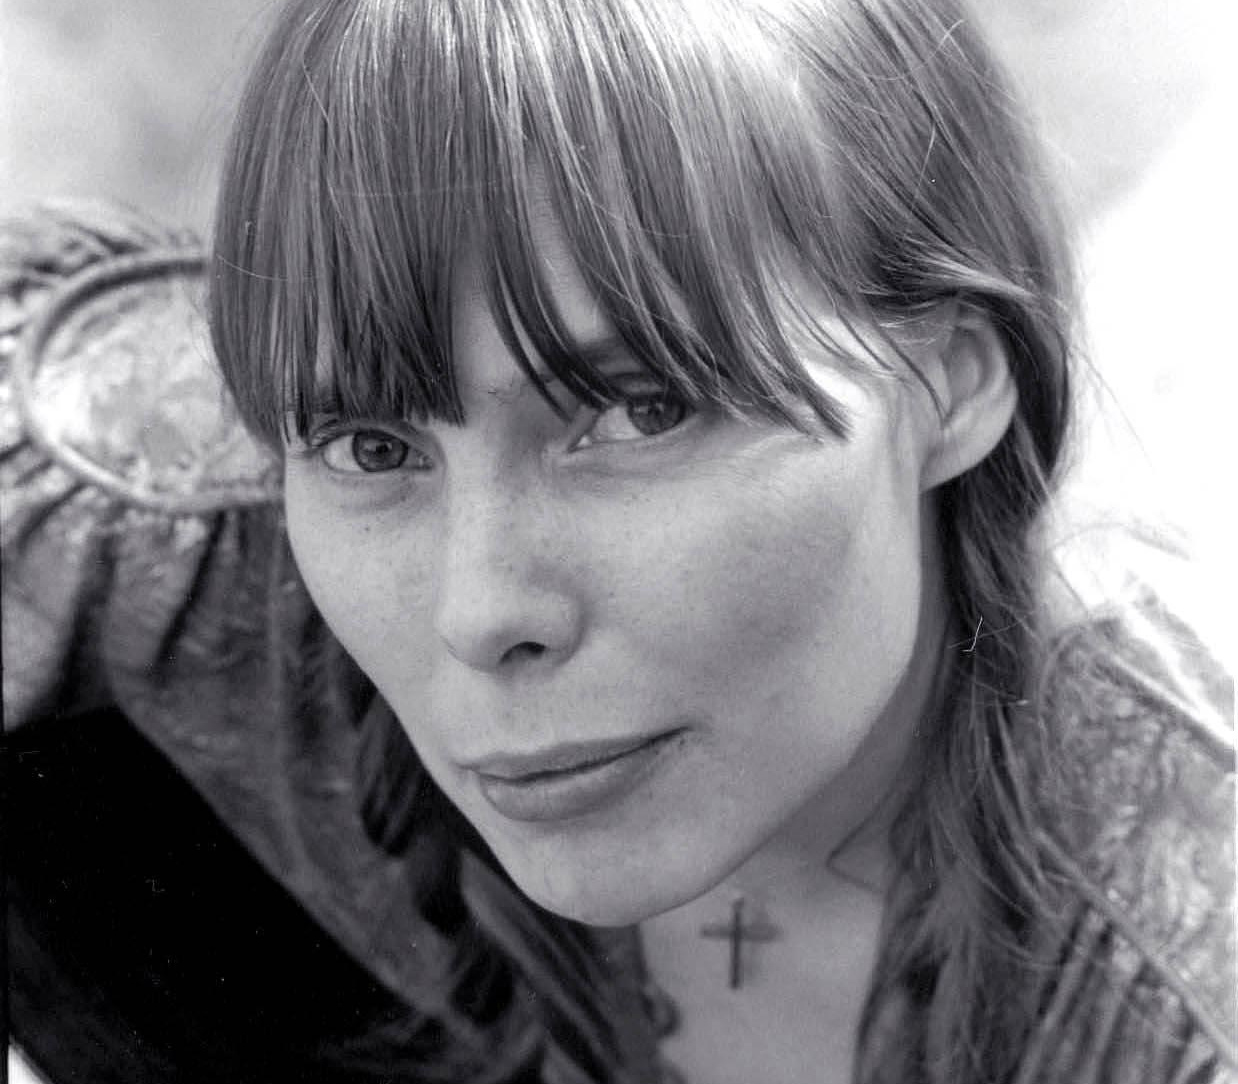 Exhibition Lecture: Painting with Words: Joni Mitchell's Music & Metaphor